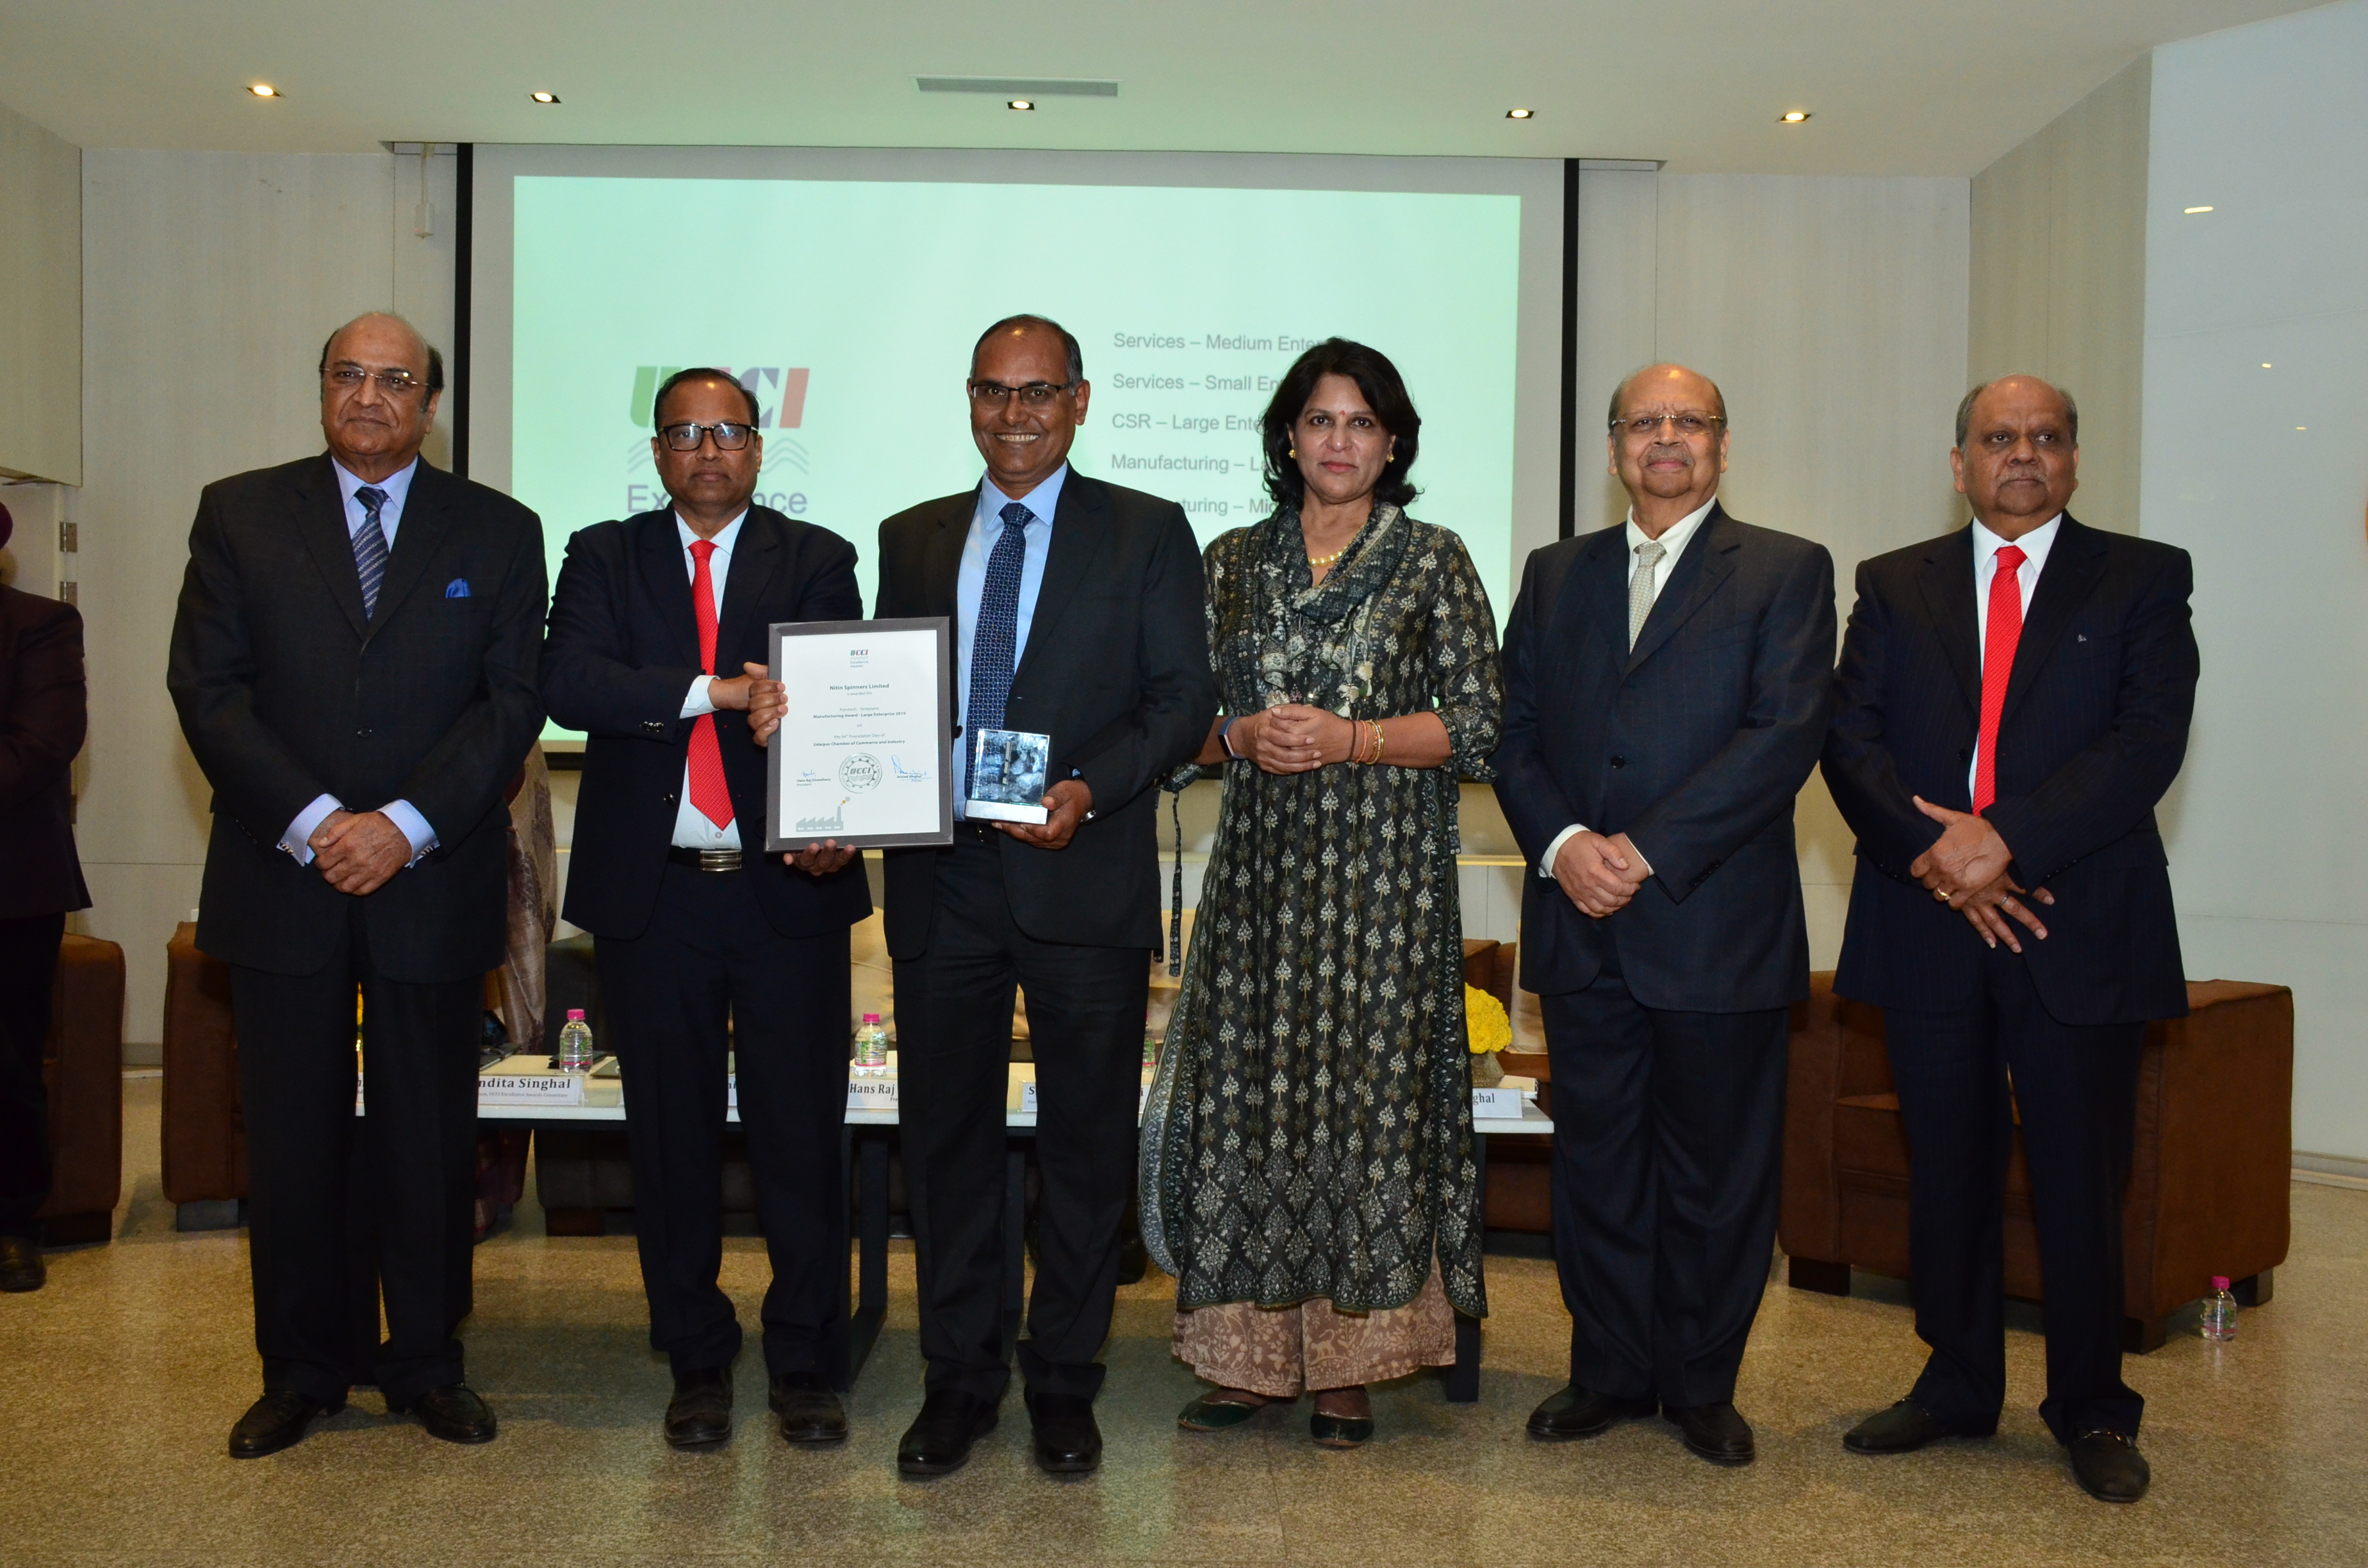 UCCI Excellence Award 2019